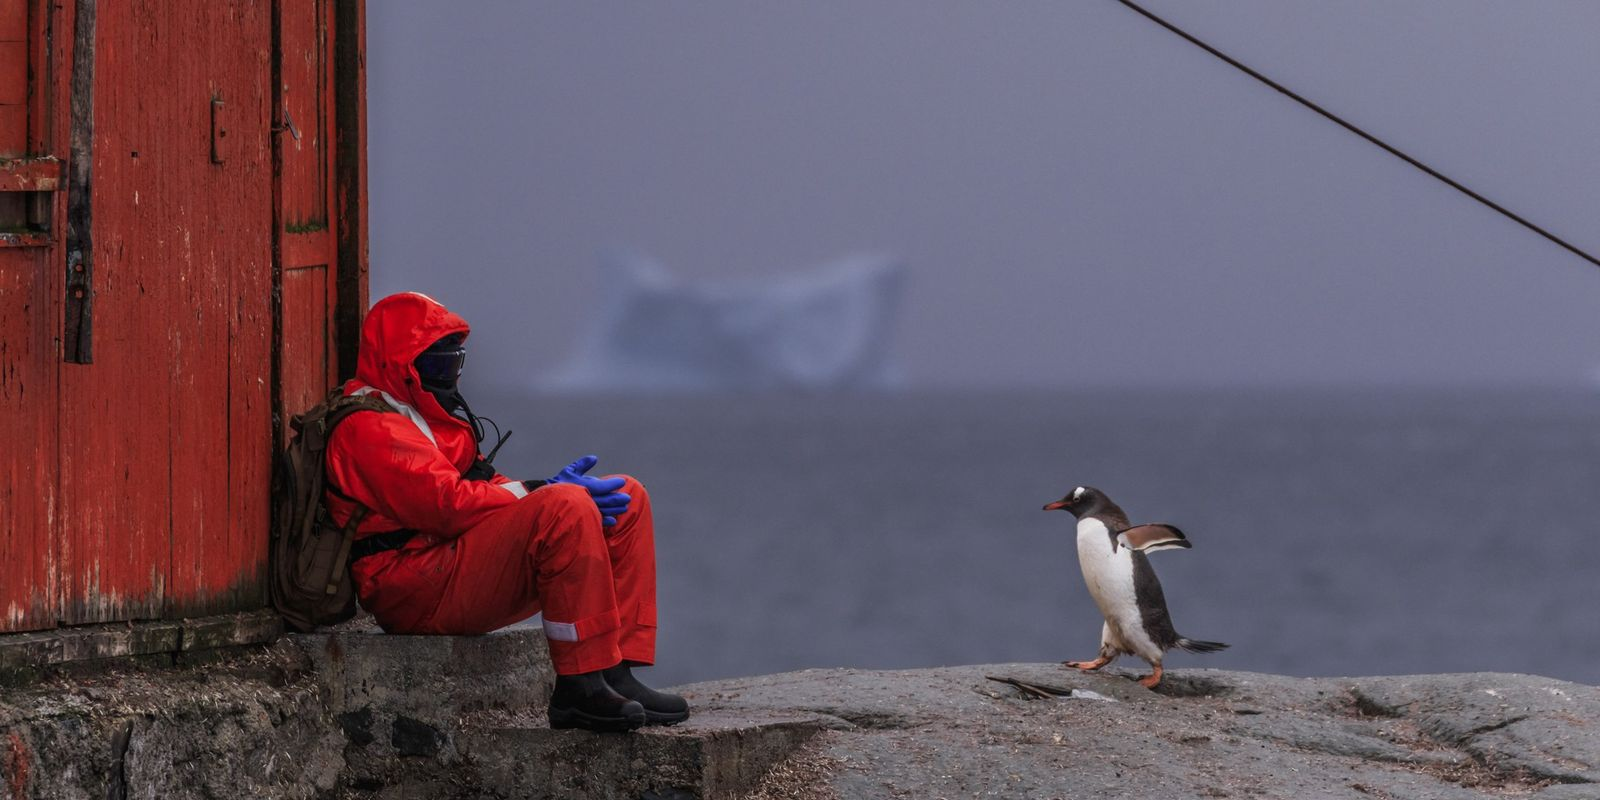 Antarctica is the last continent without COVID-19. Scientists want to keep it that way.